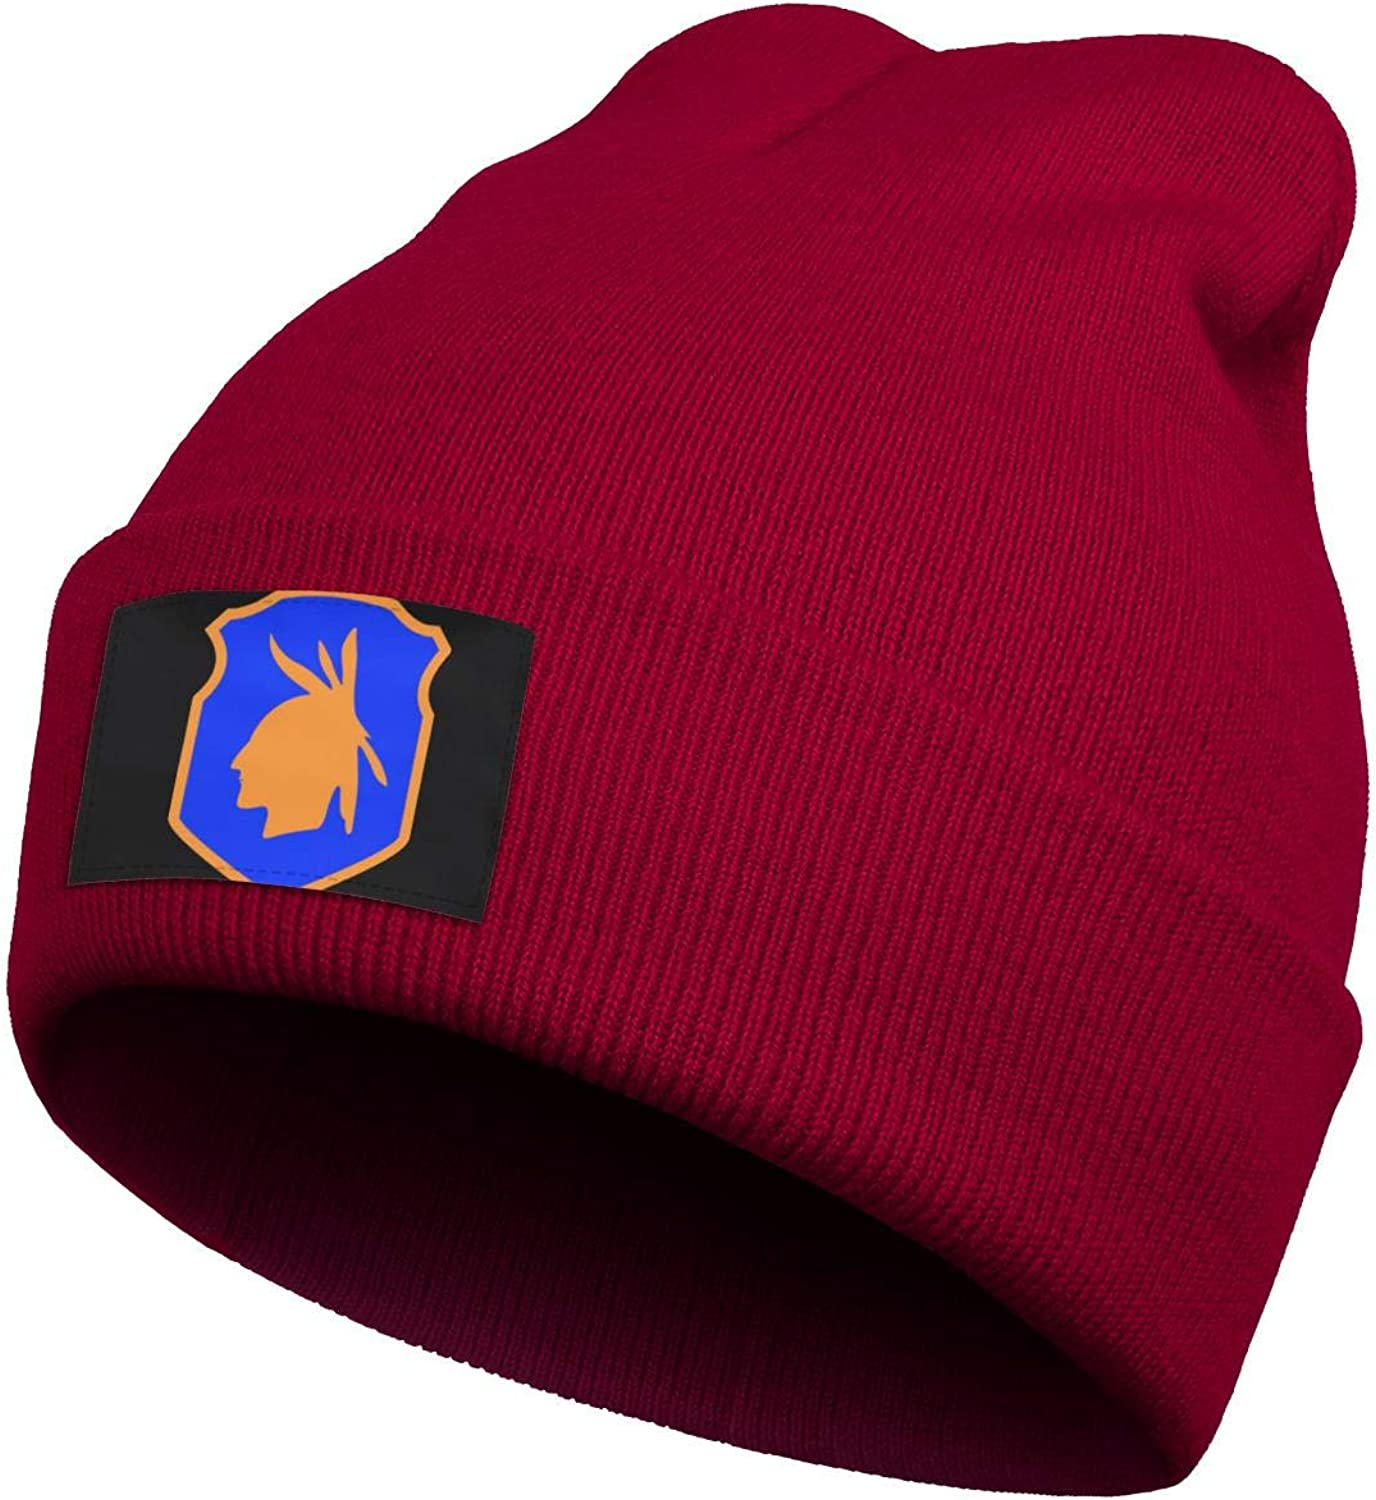 Beanie Men Women USA 98th Infantry Division Hat Perfect for Hiking and Many More Outdoor Activities